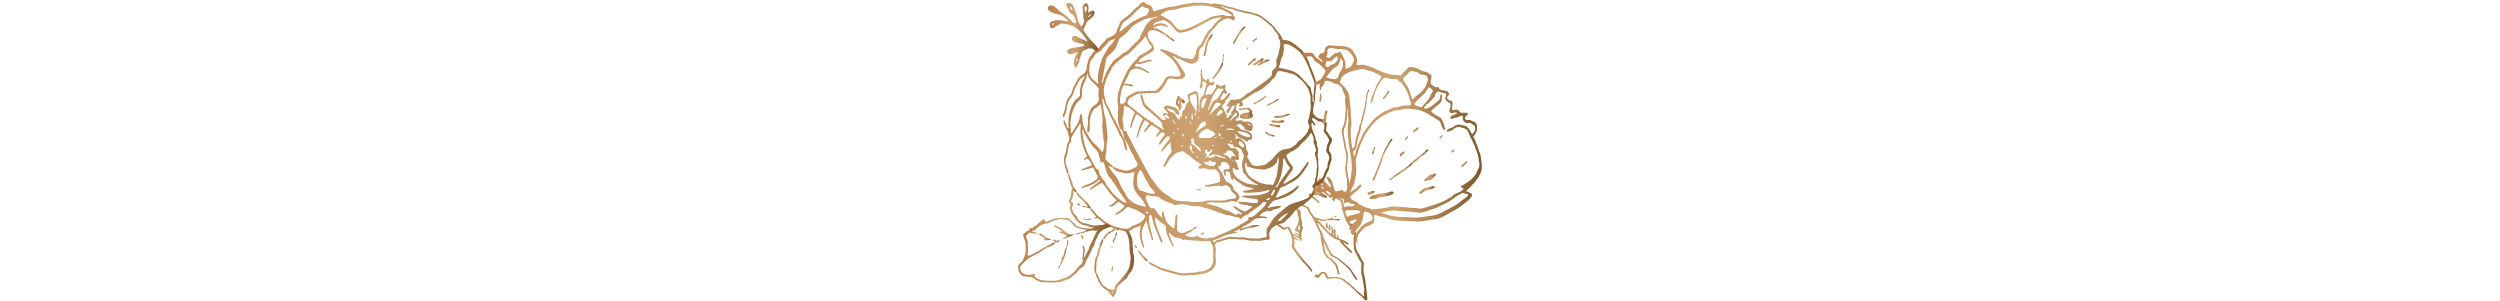 Flower.png